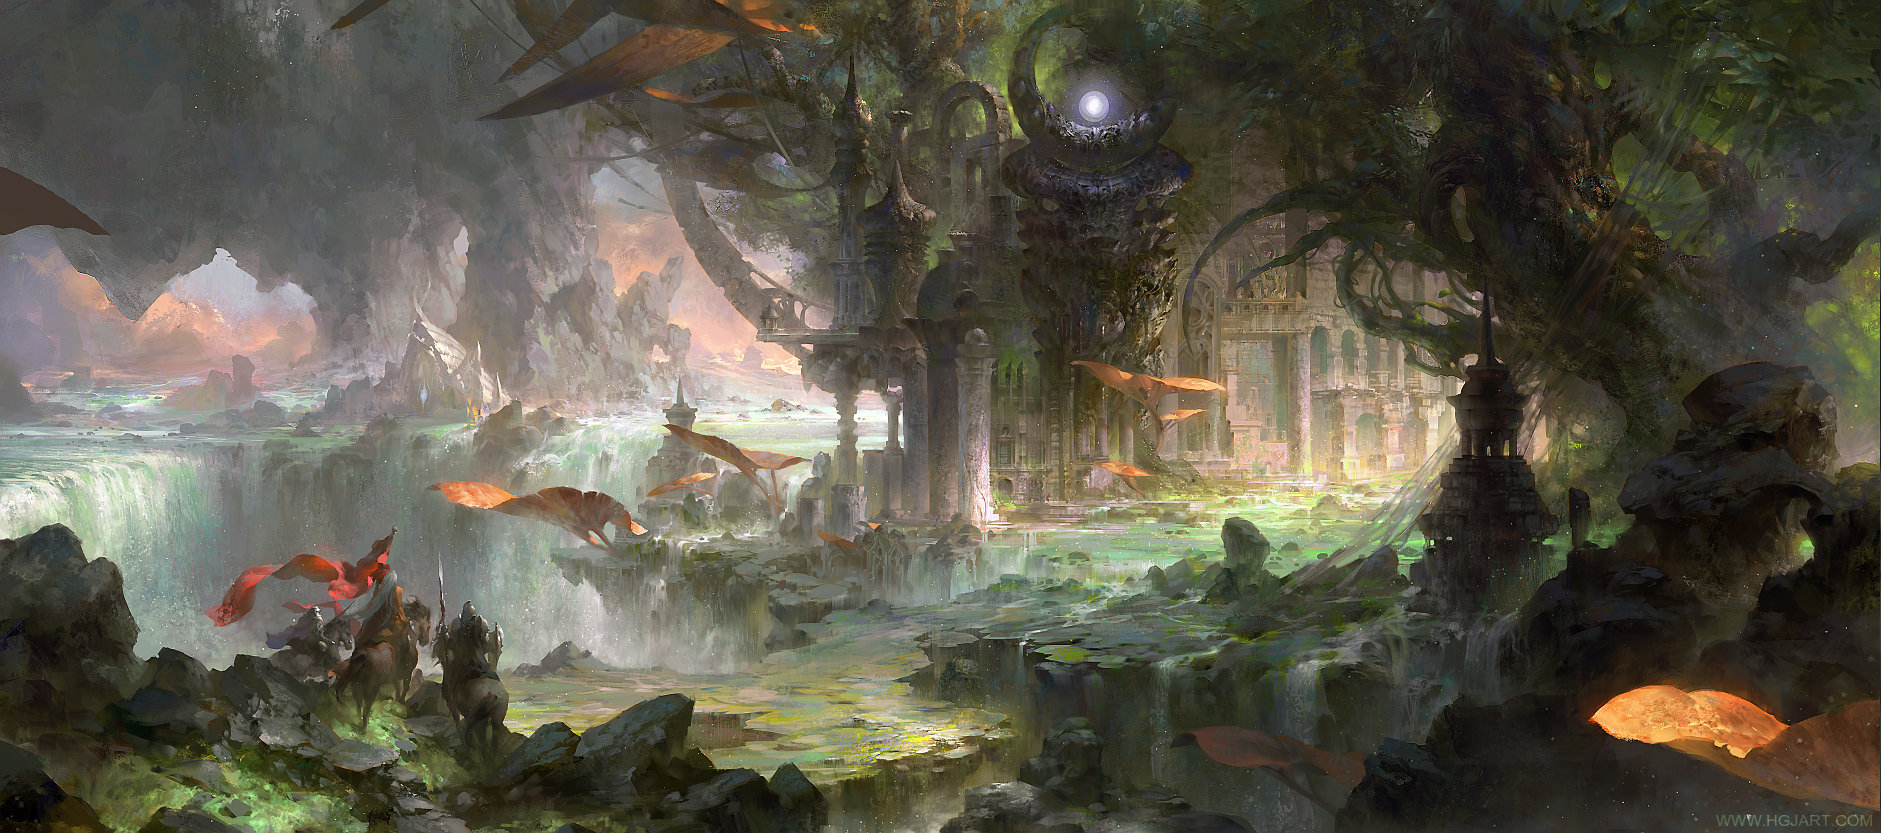 guangjian huang digital painting The ancient city